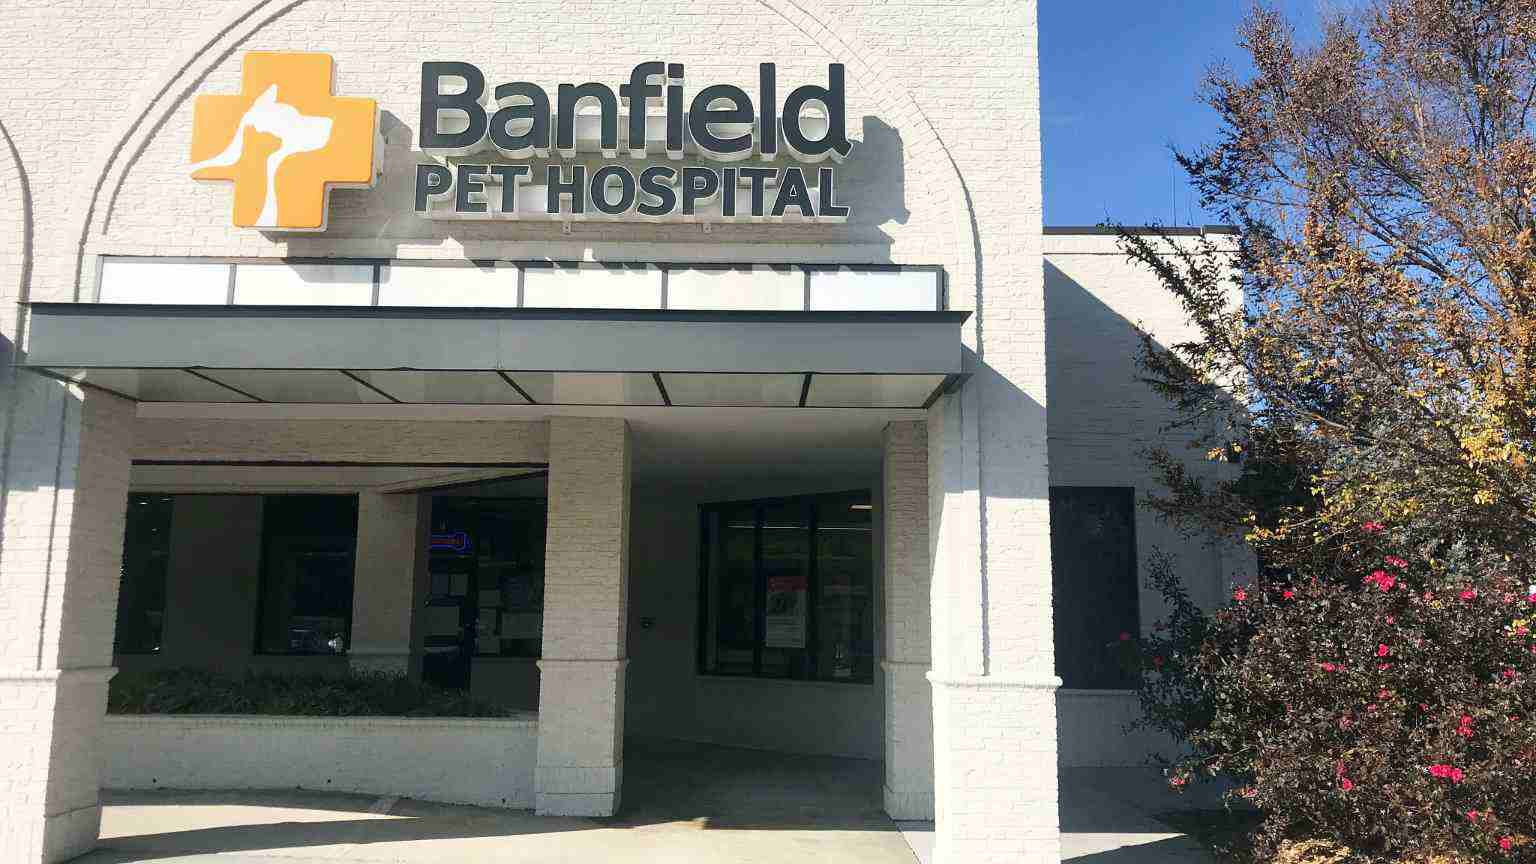 The entrance of the Banfield Pet Hospital